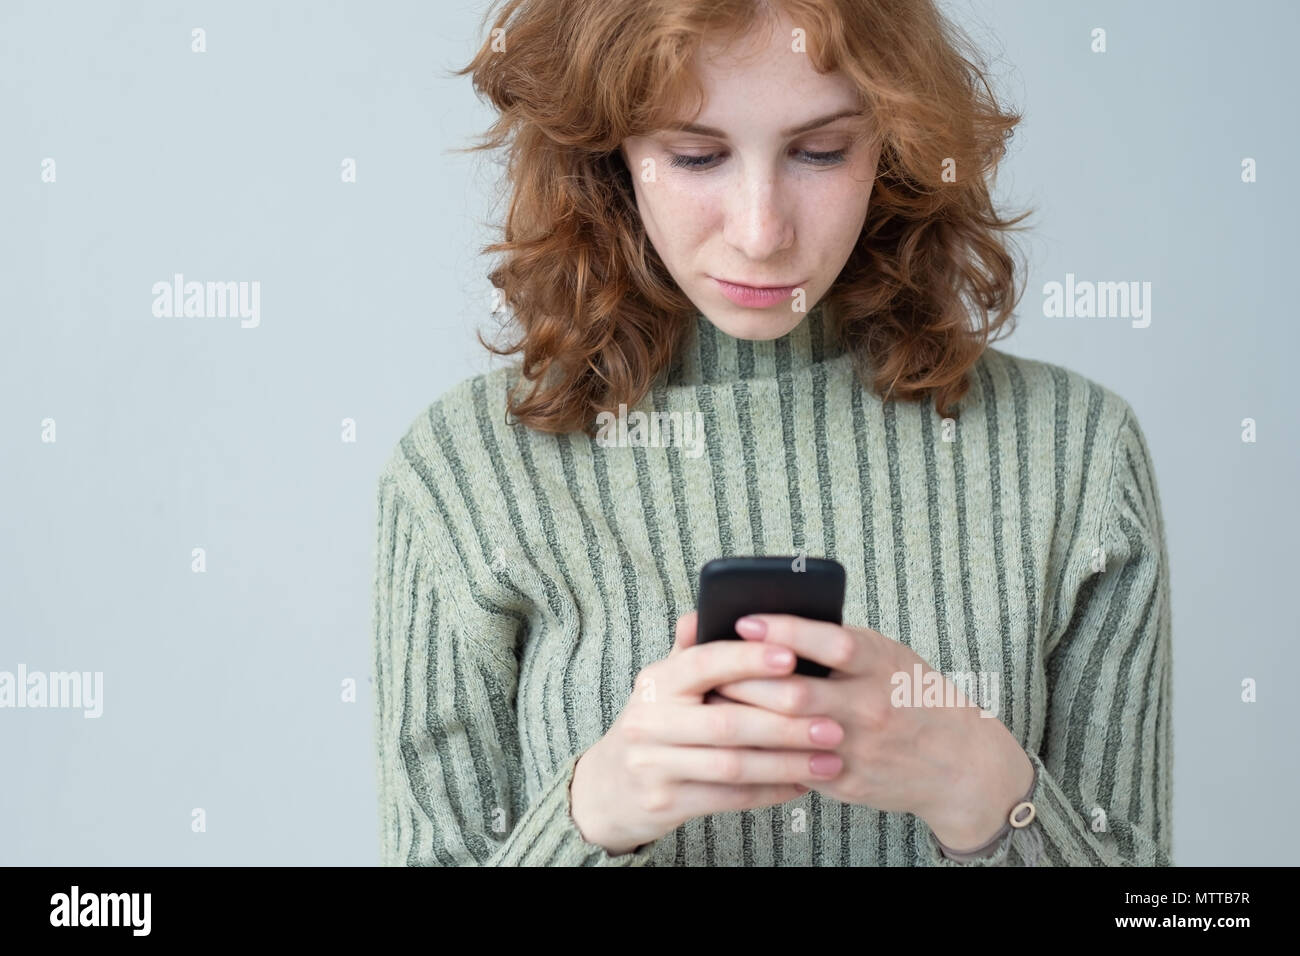 Pretty caucasian girl with red hair sending sms - Stock Image